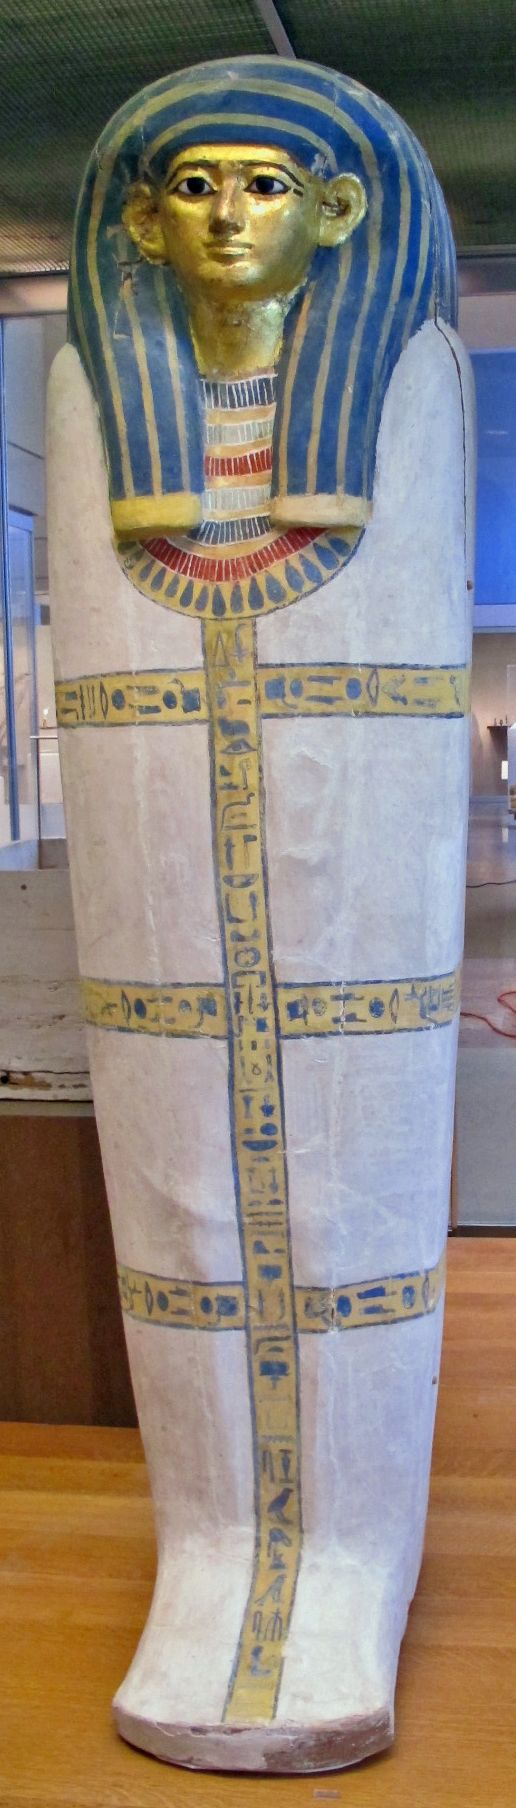 Coffin of Harmose Period: New Kingdom Dynasty: Dynasty 18 Reign: Joint reign of Hatshepsut and Thutmose III Date: ca. 1479–1458 B.C. Geography: From Egypt, Upper Egypt; Thebes, Sheikh Abd el-Qurna, Tomb of Senenmut (TT 71), below, burial of Singer Harmose,